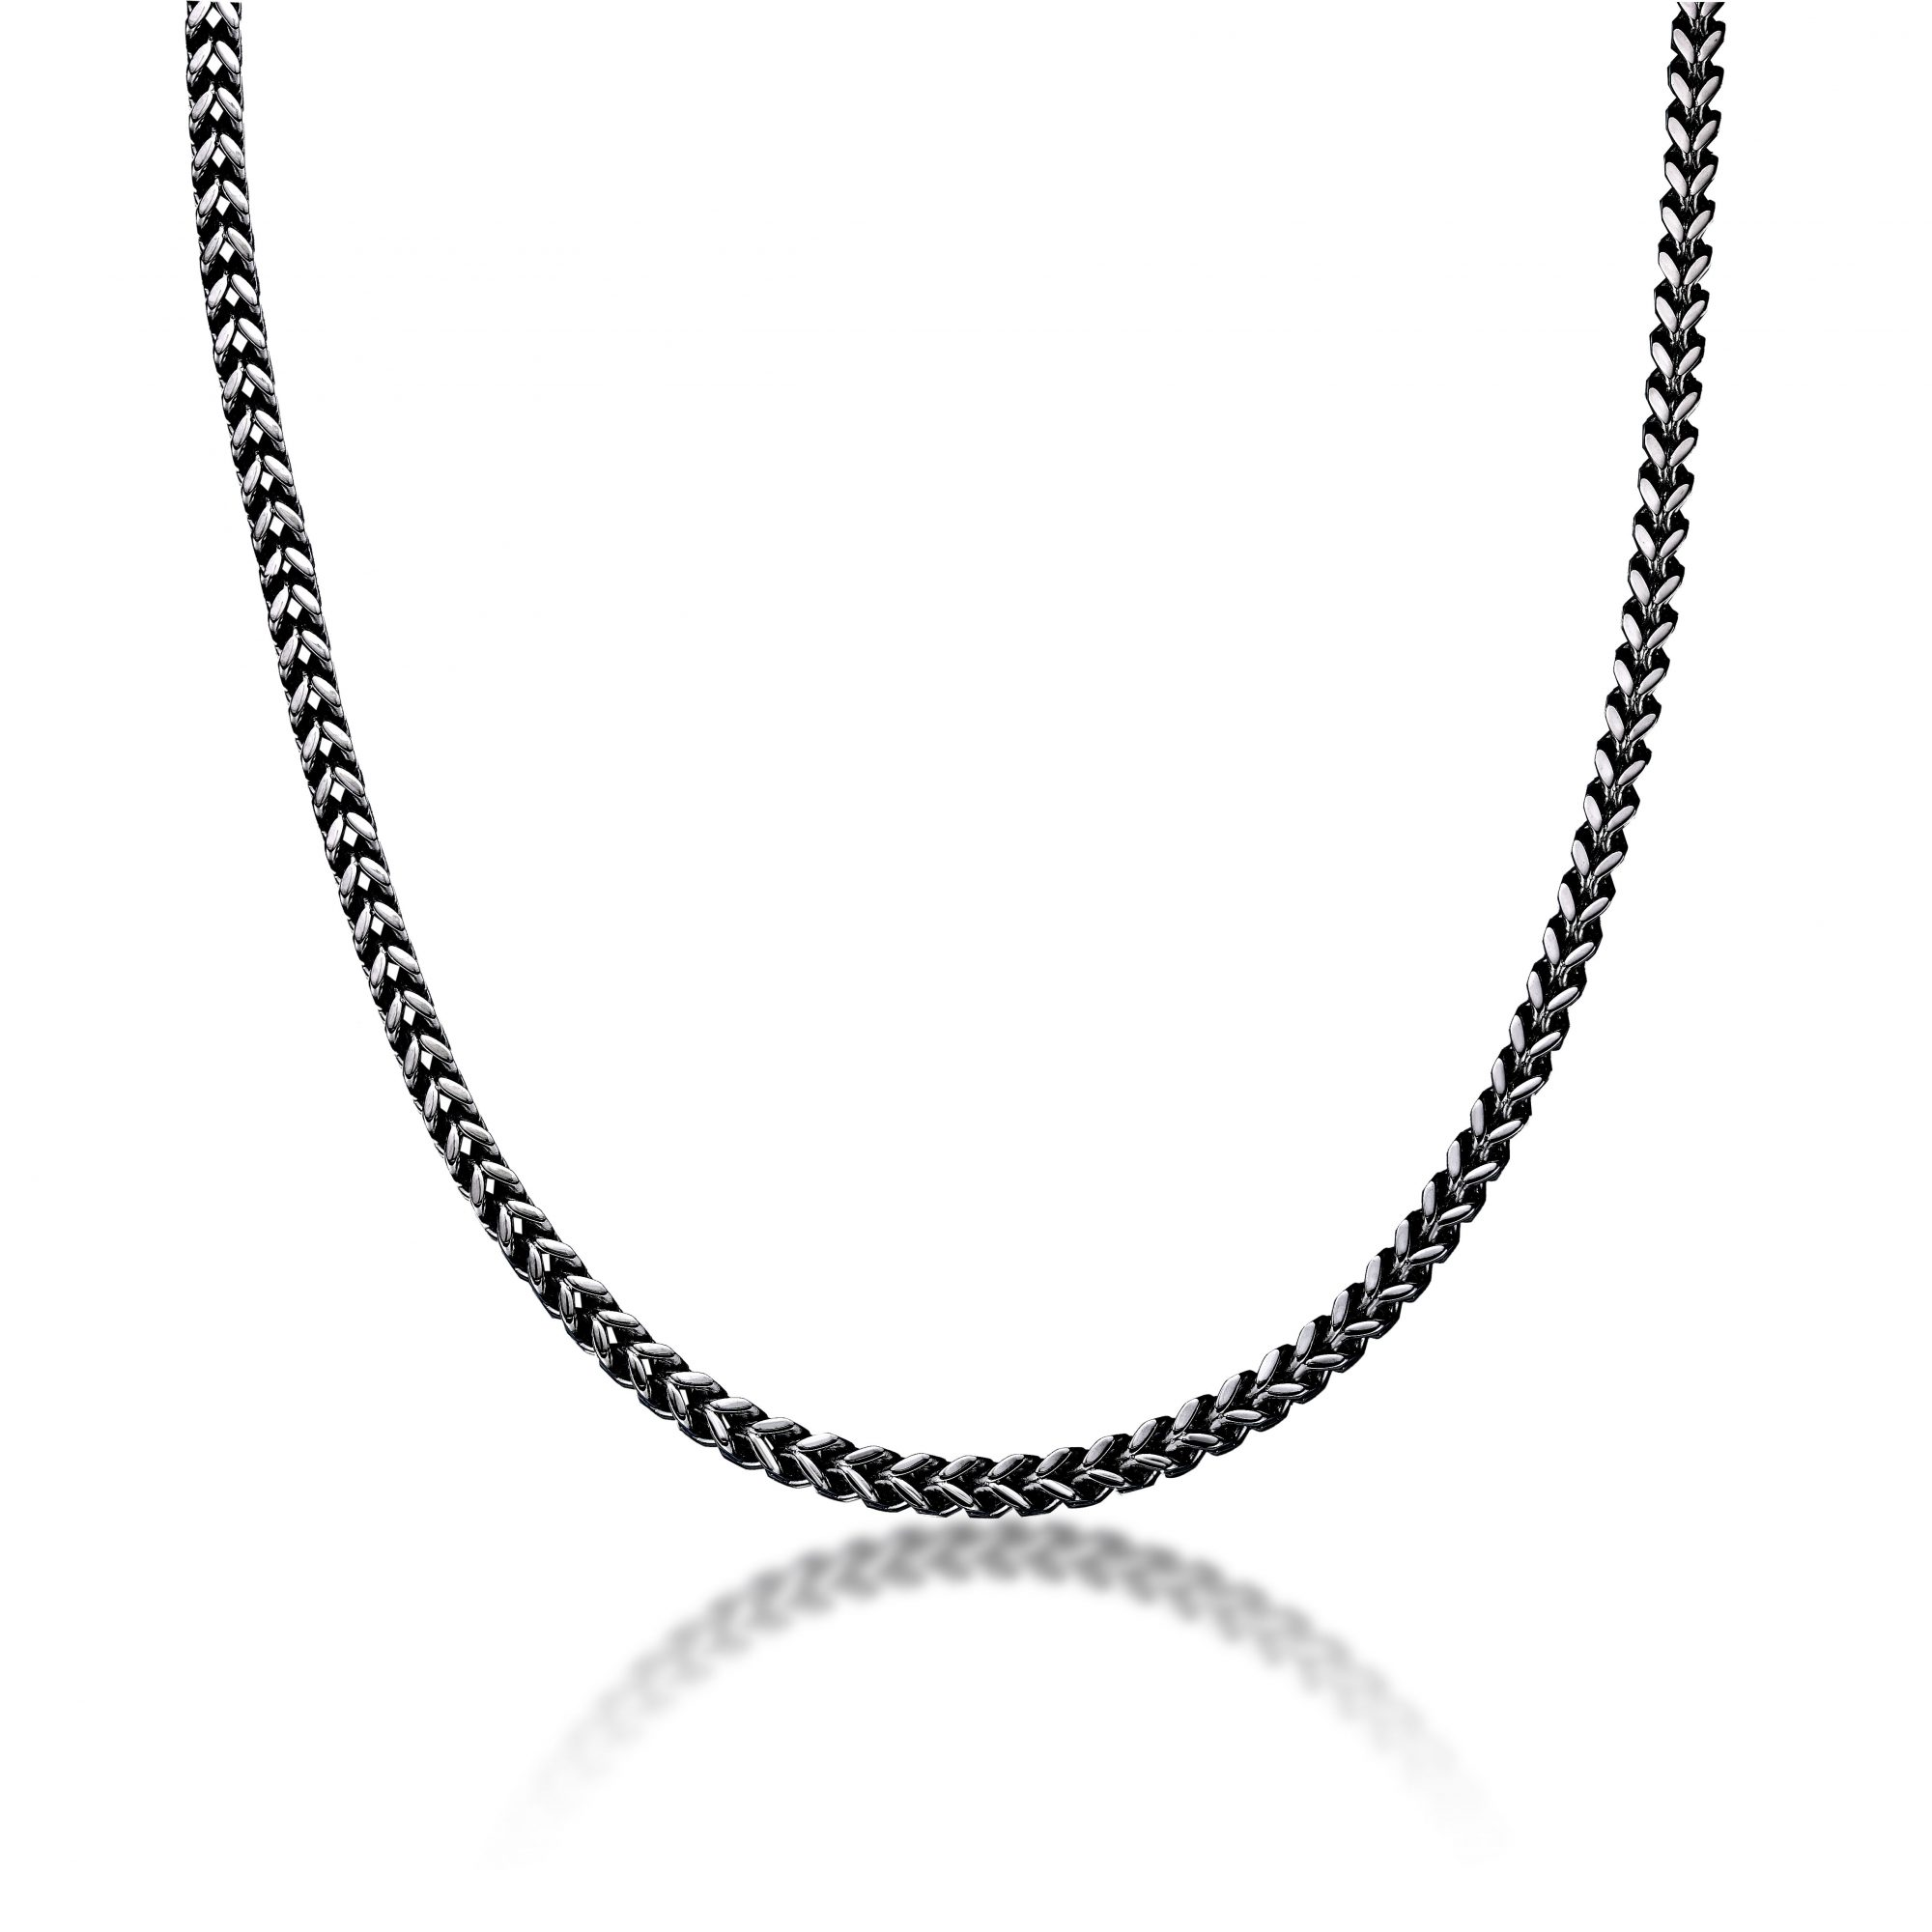 Stainless Steel Antique Ion Plated Foxtail Chain Necklace - 5 MM Wide, 22 Inches Length with Lobster Closure